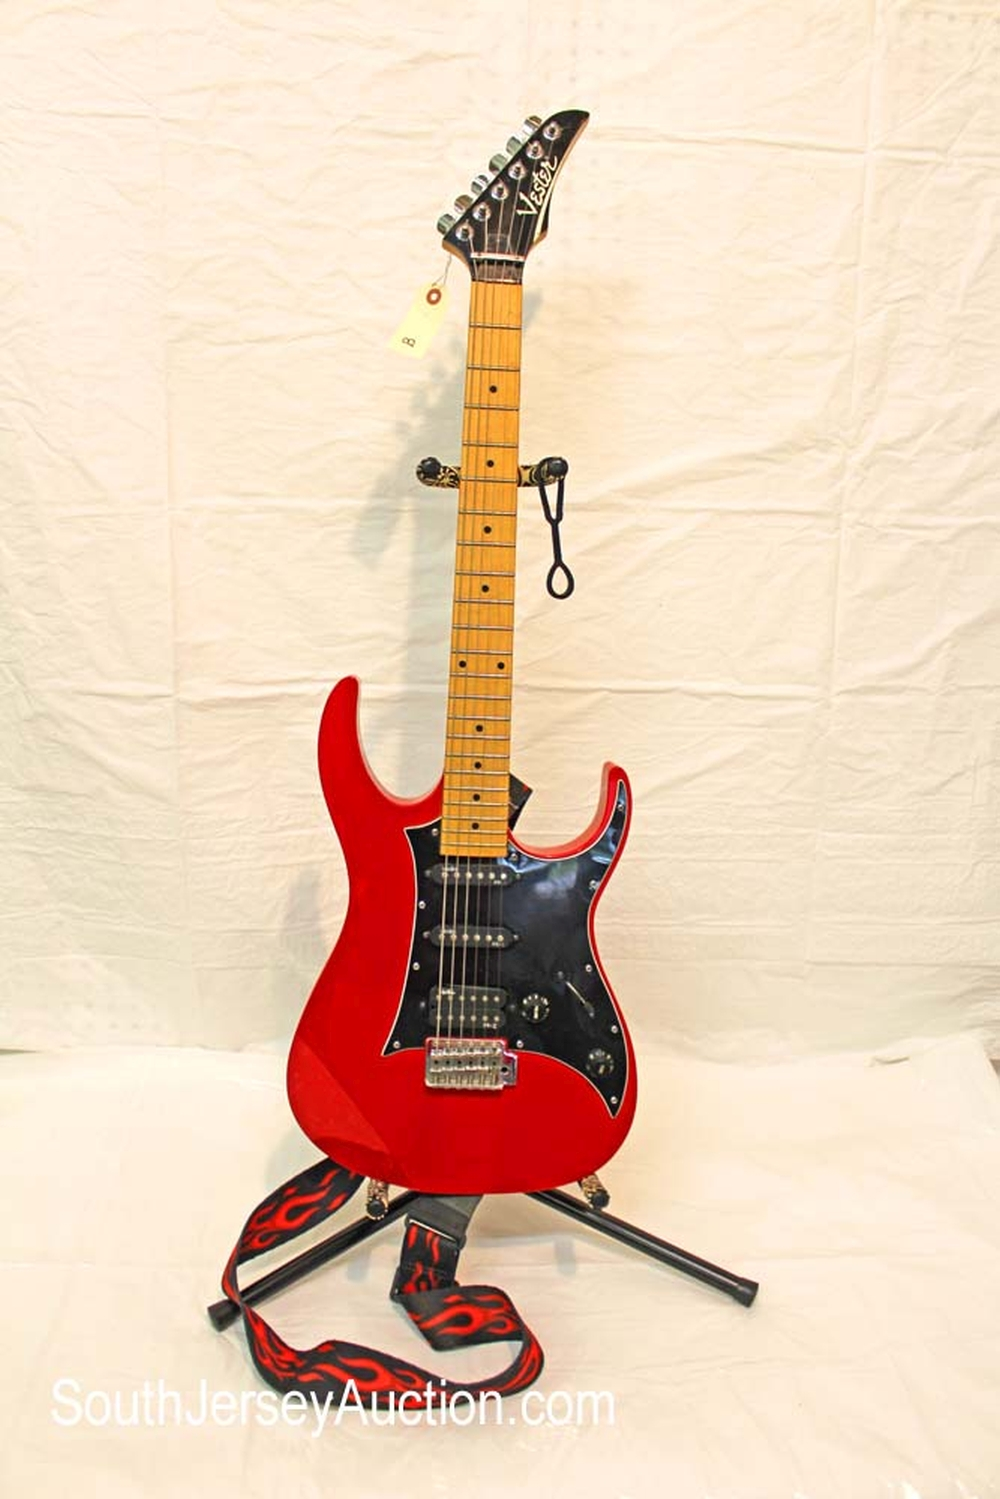 1980's Vester lawsuit guitar - rare - made for a short period of time, with maple neck,  and  strap,  s/n 12899, all original, very good condition